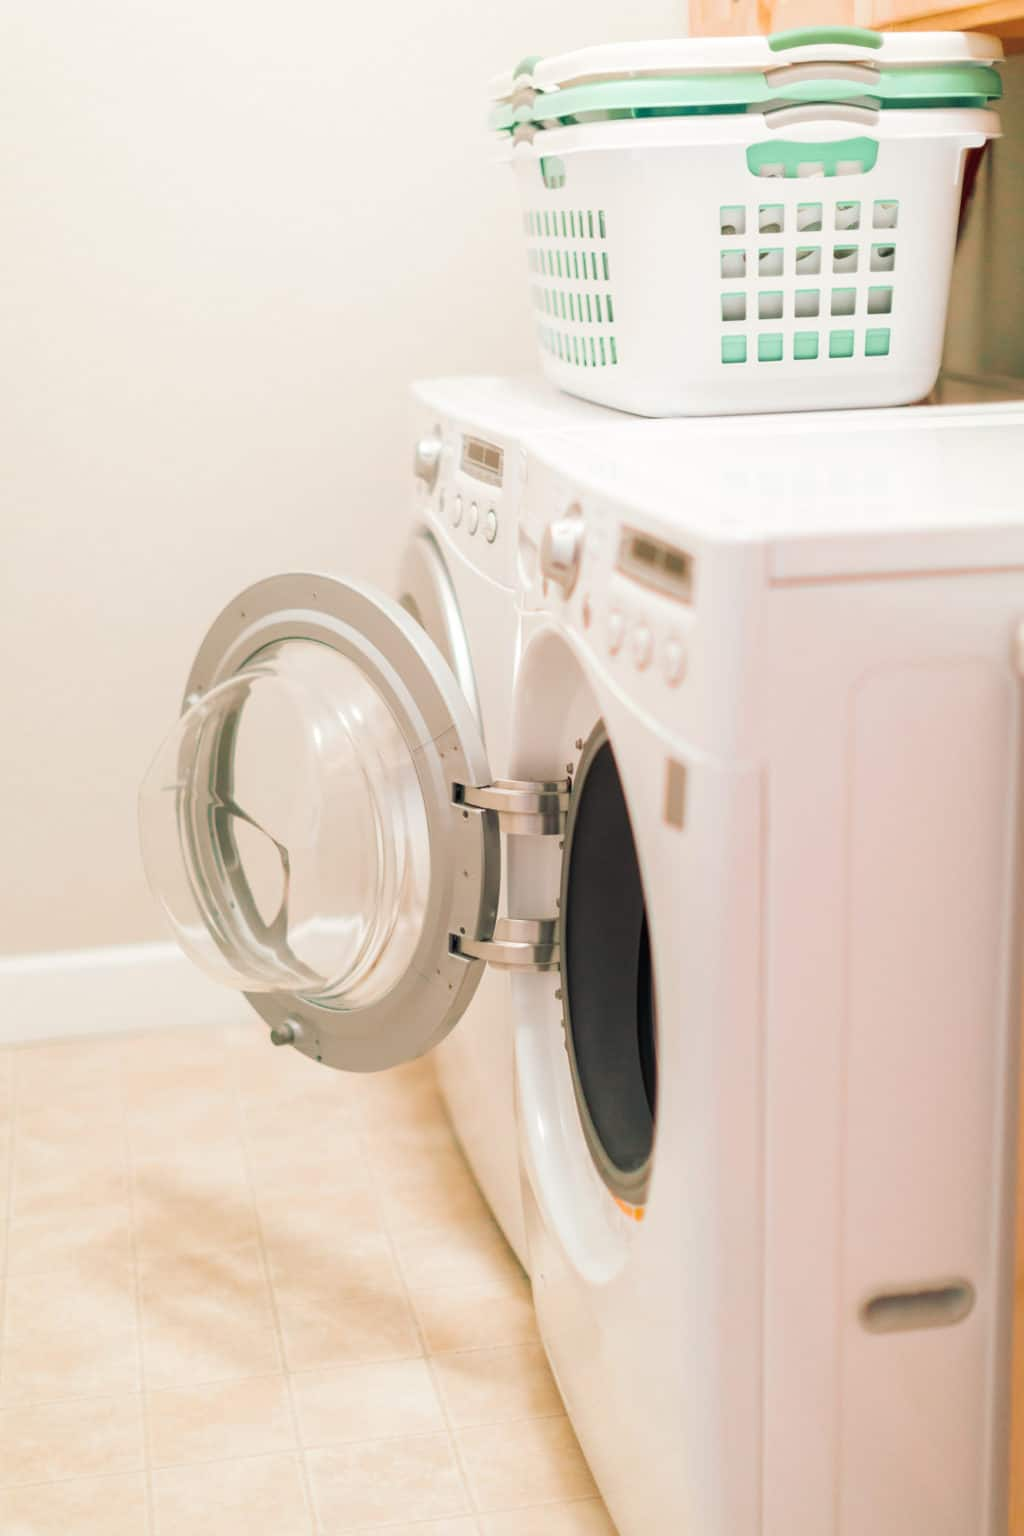 1-Step DIY Washing Machine Cleaning Powder | The Nourished ...